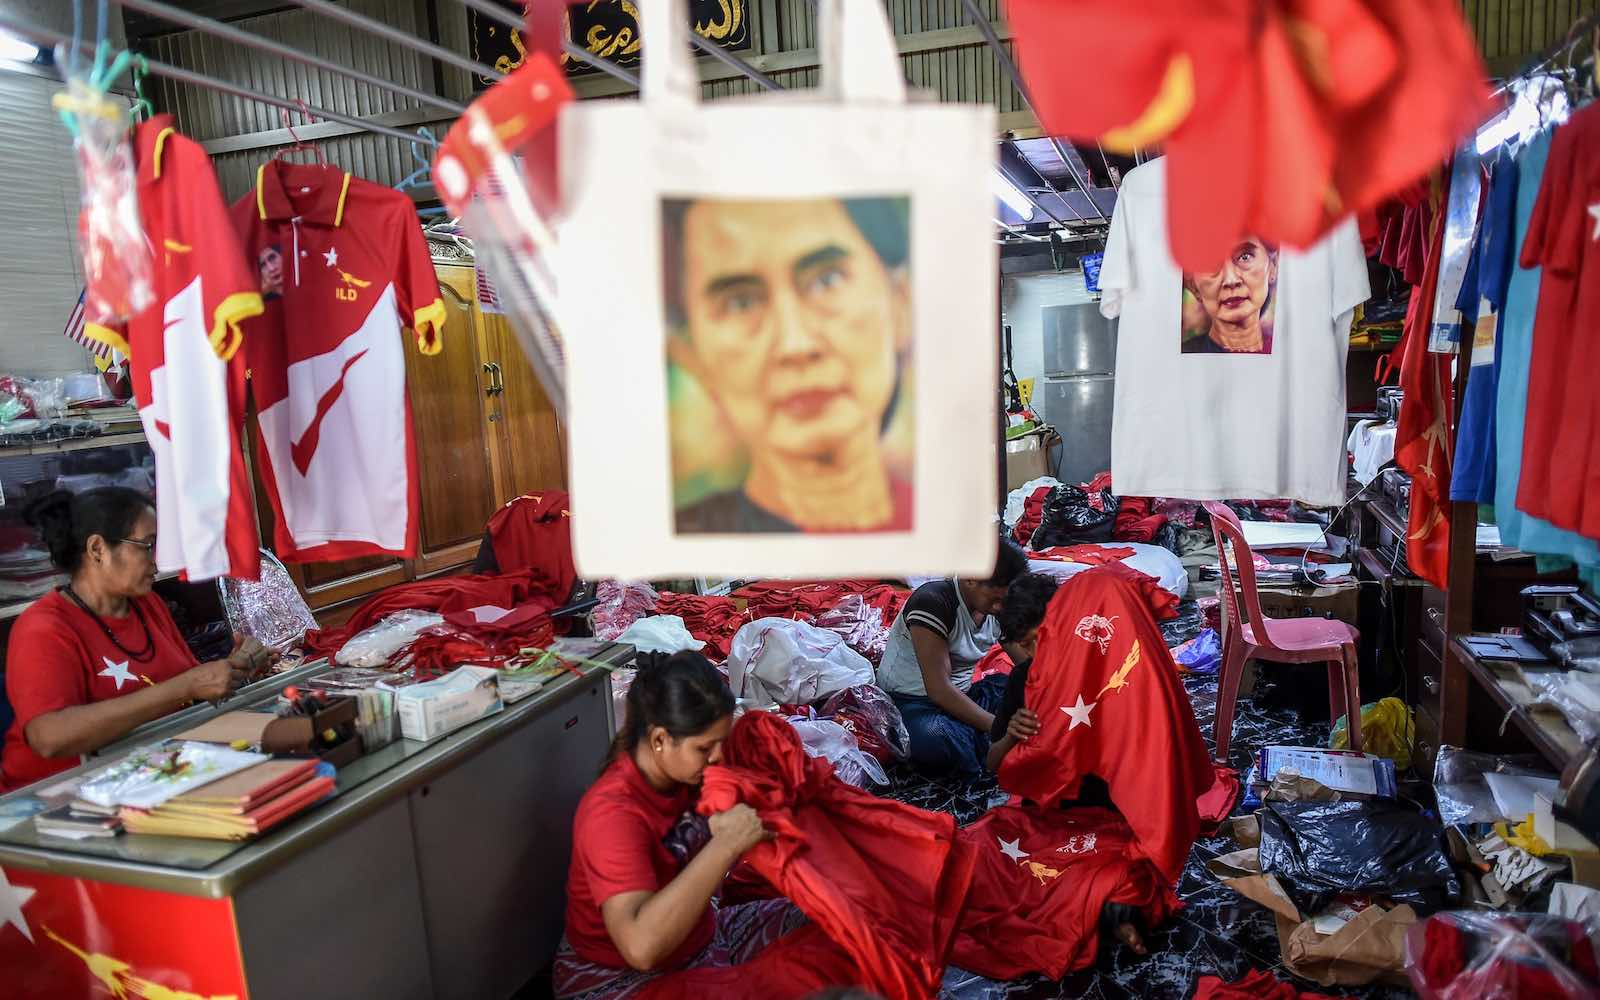 Workers pack T-shirts promoting Aung San Suu Kyi's National League for Democracy party at a print house in Yangon, 2 September 2020 (Ye Aung Thu/AFP via Getty Images)